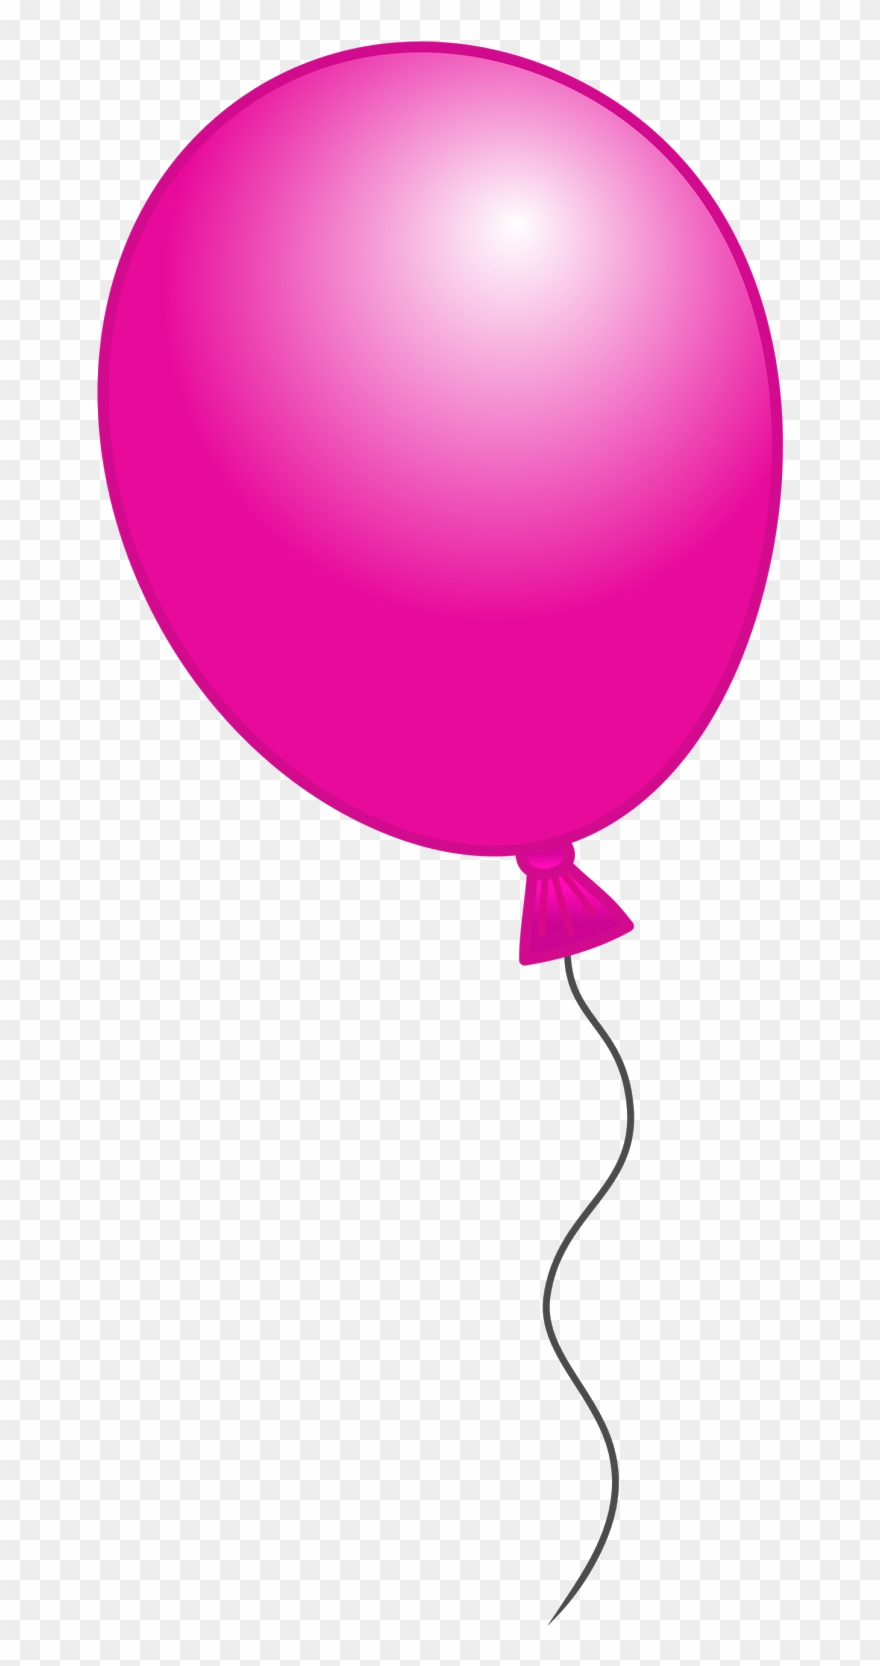 Balloon pink. Free clip art with